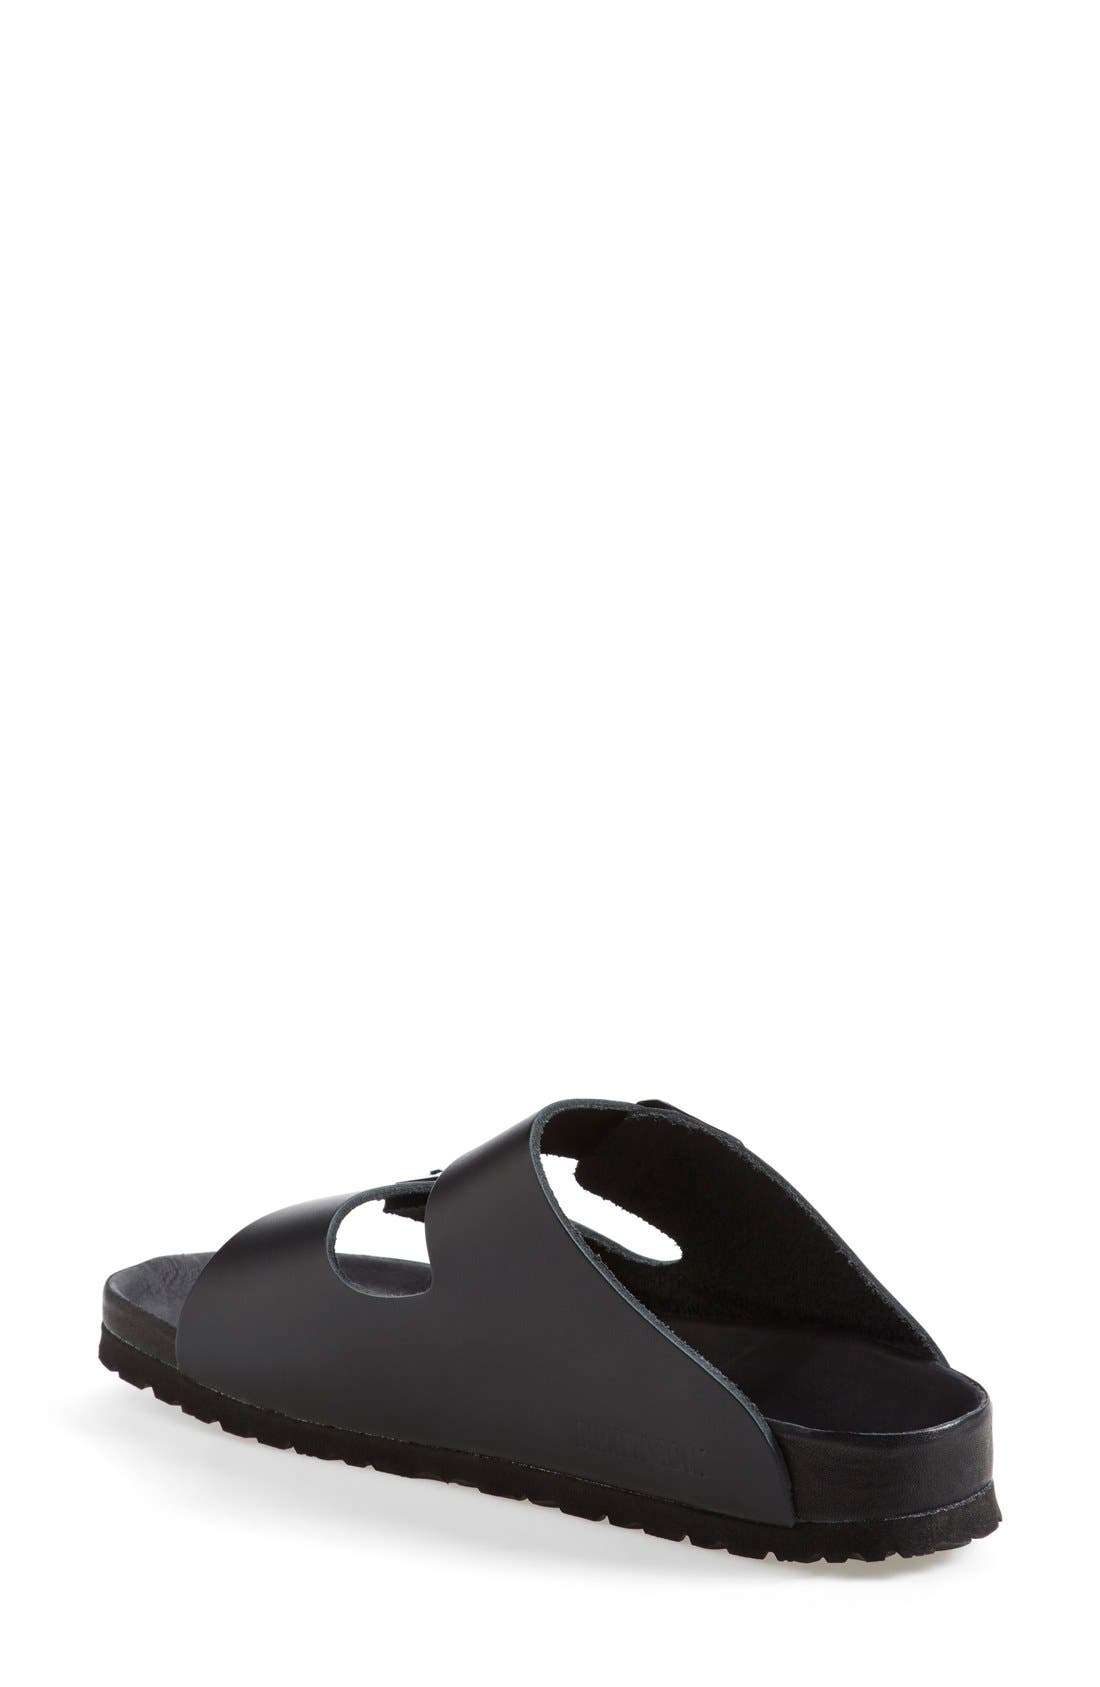 'Monterey' Leather Sandal,                             Alternate thumbnail 2, color,                             Black